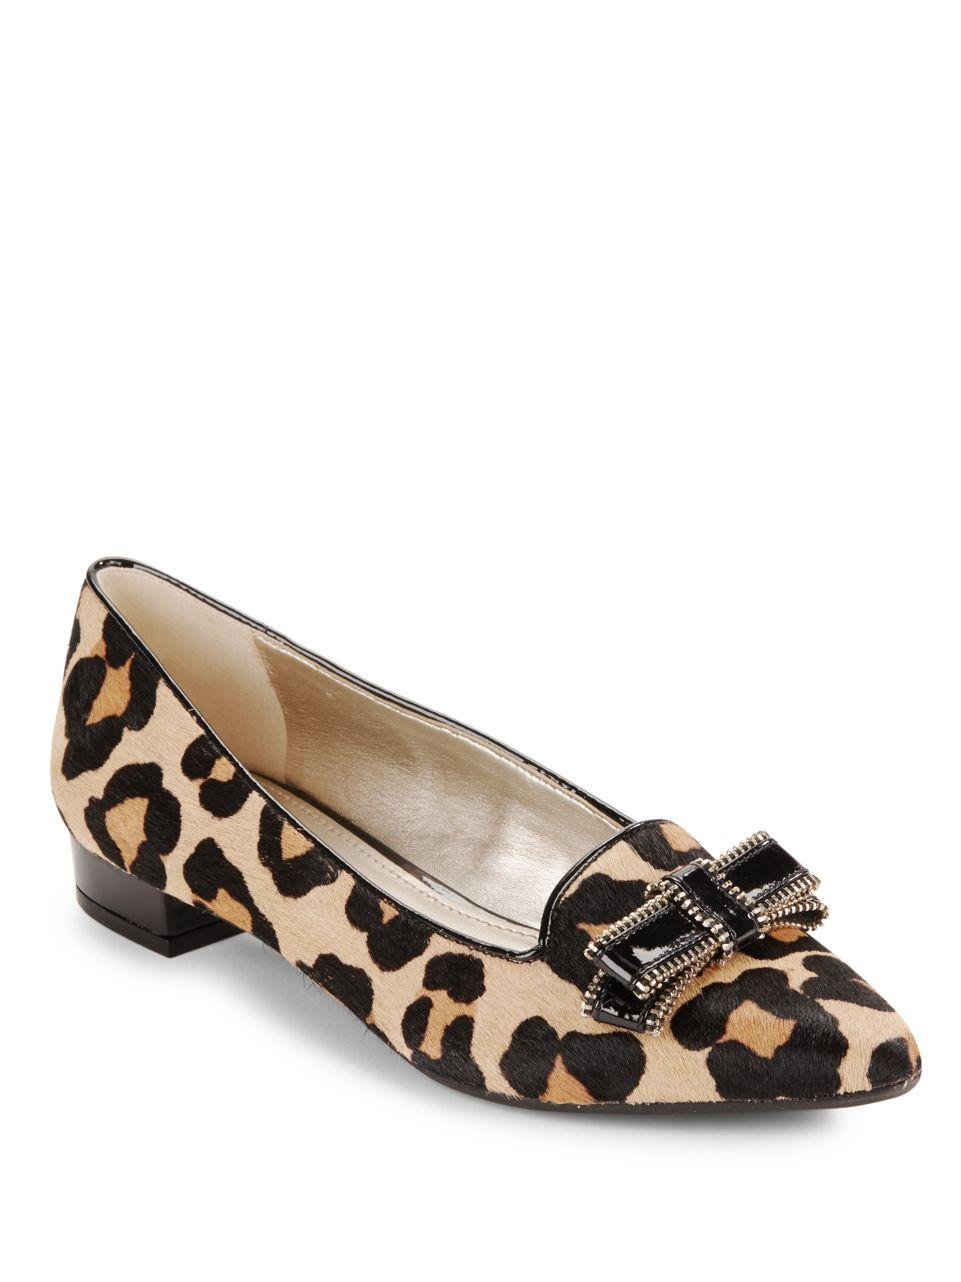 Anne Klein Pointy Flat Shoes